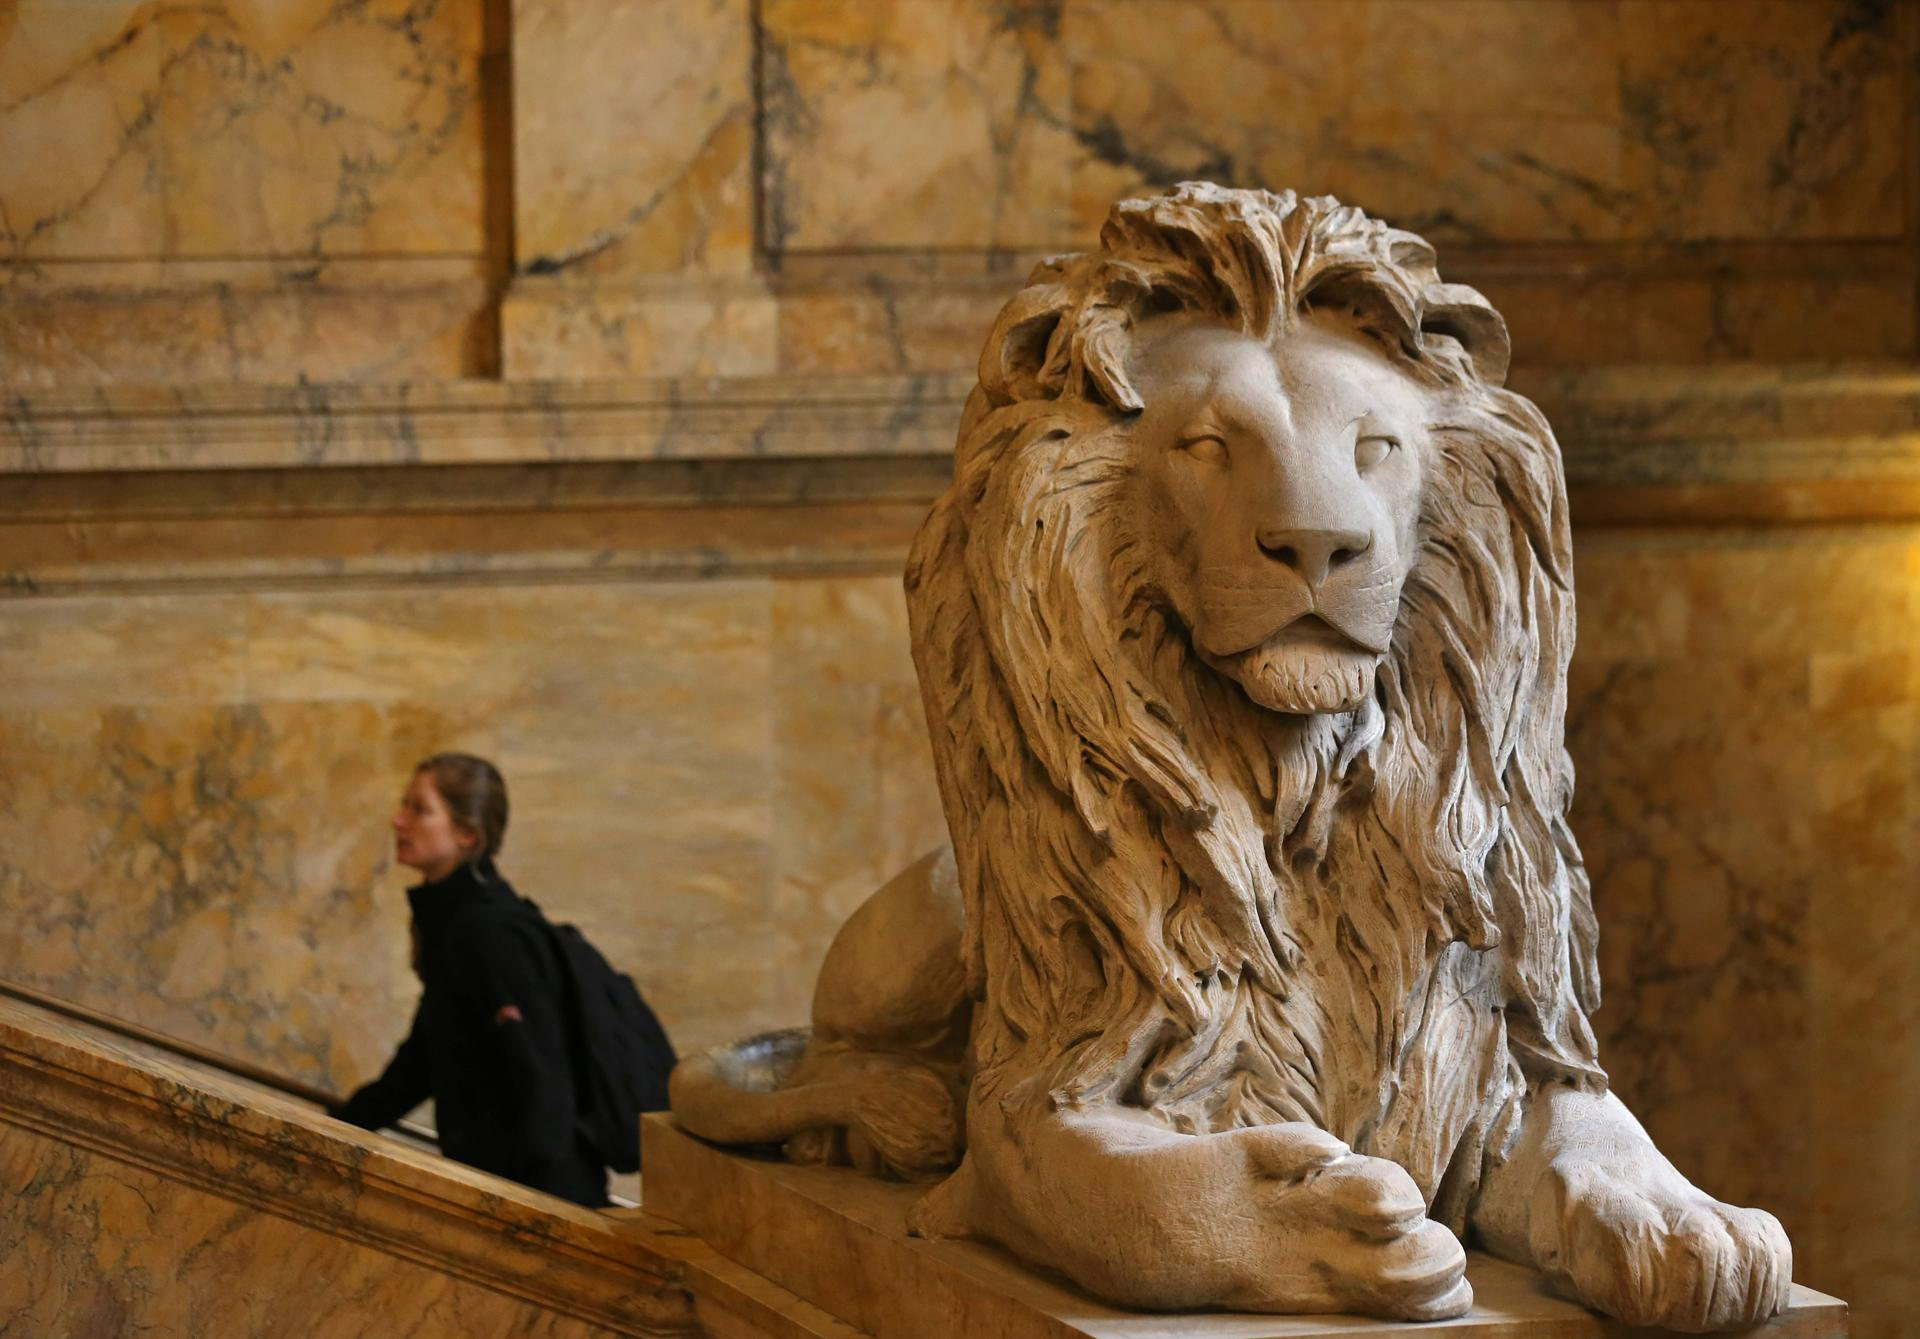 One of two lions on guard at the Boston Public Library in Copley Square. The lions are made from unpolished Siena marble by sculptor Louis Saint-Gaudens. They are memorials to the Second and Twentieth Massachusetts Civil War infantry regiments.